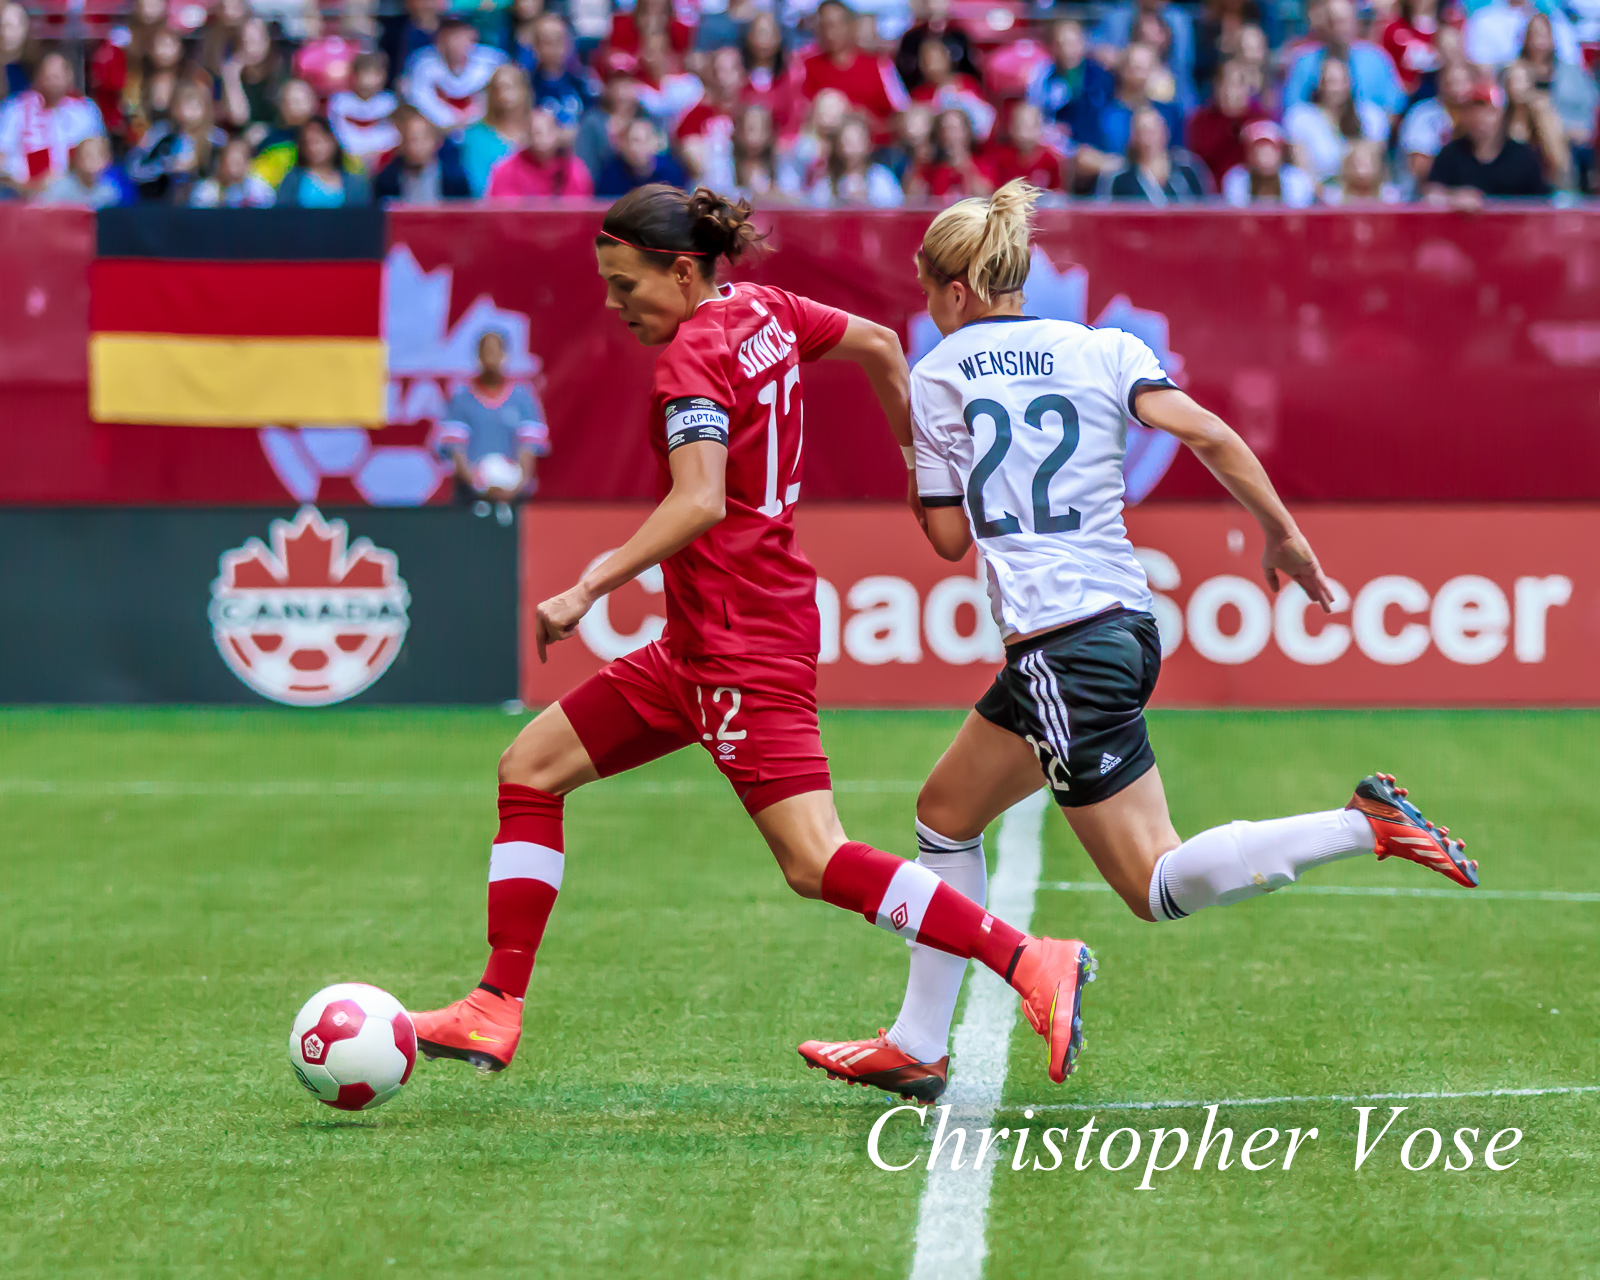 2014-06-18 Christine Sinclair and Luisa Wensing.jpg